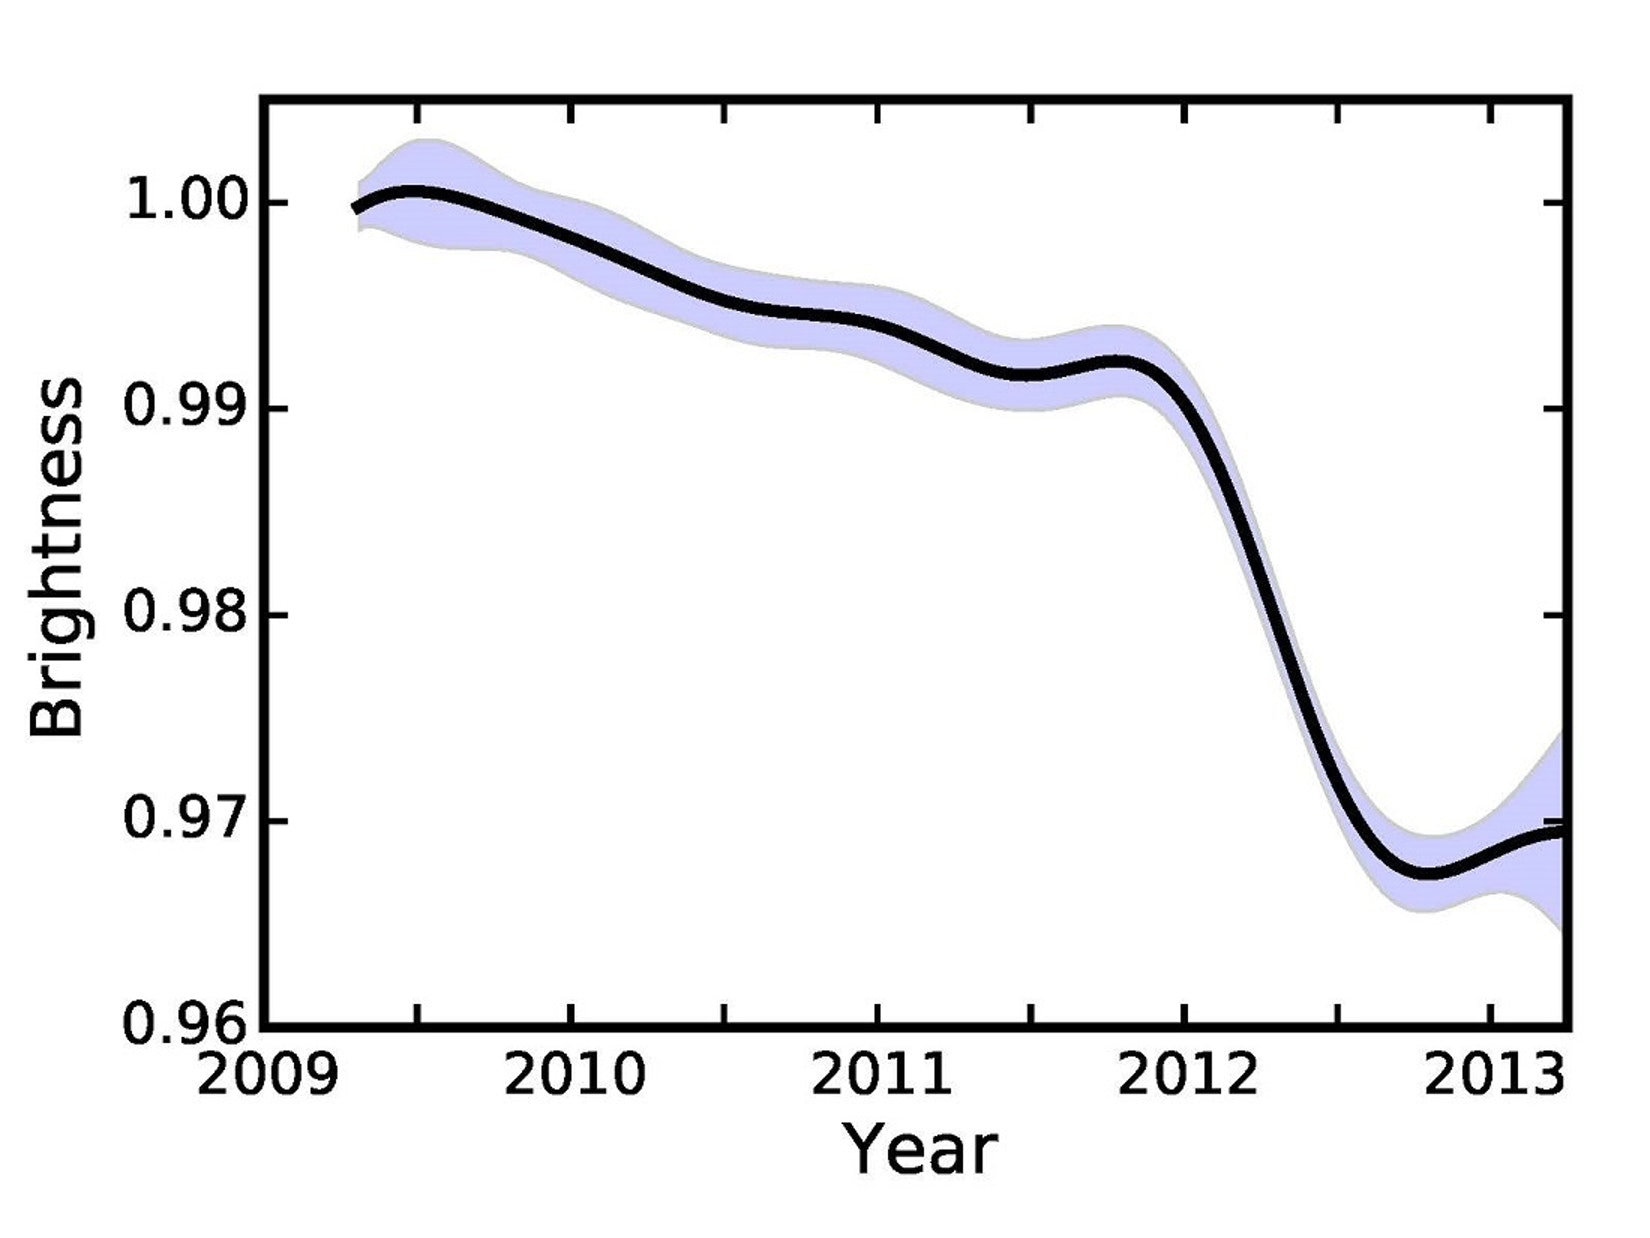 Brightness of KIC 8462852 as a function of time. The solid line represents the authors' best estimate of the brightness of the star during the Kepler mission, while the shaded region represents the uncertainty on the brightness at any time. The authors find the star's brightness slowly decreased over time until early 2012, when it rapidly dimmed in brightness by 2 percent over six months. Image is courtesy of Ben Montet.